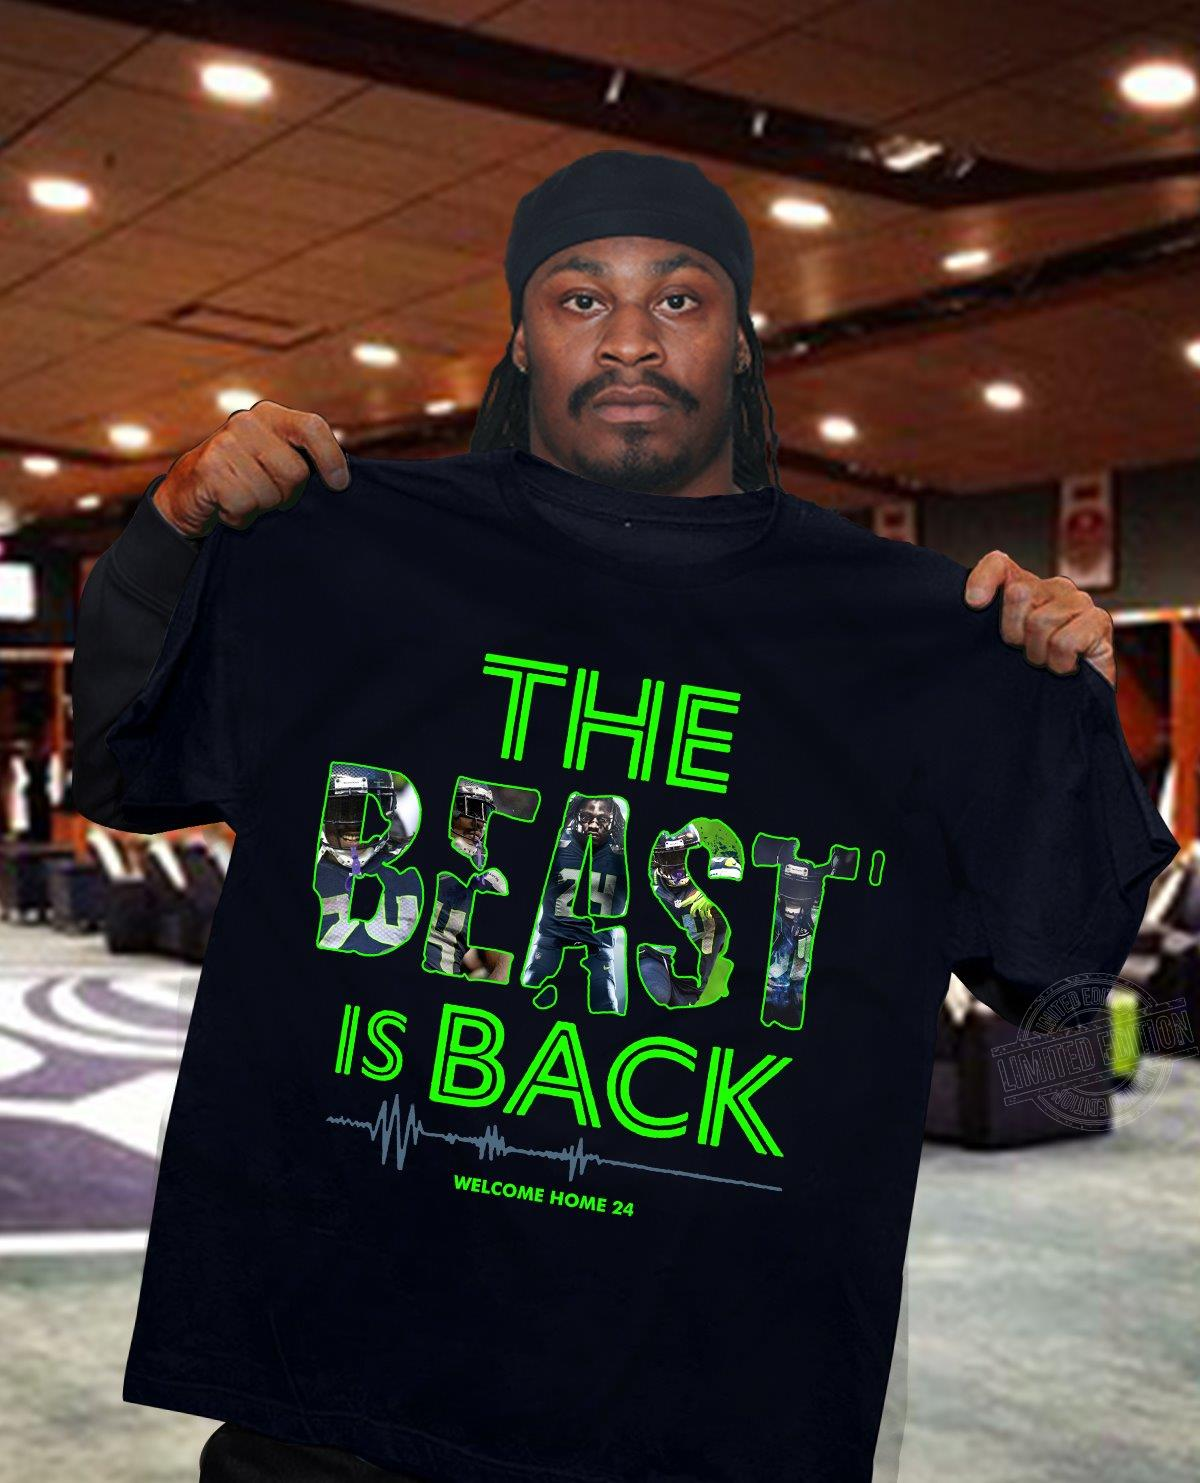 The beast is back Shirt